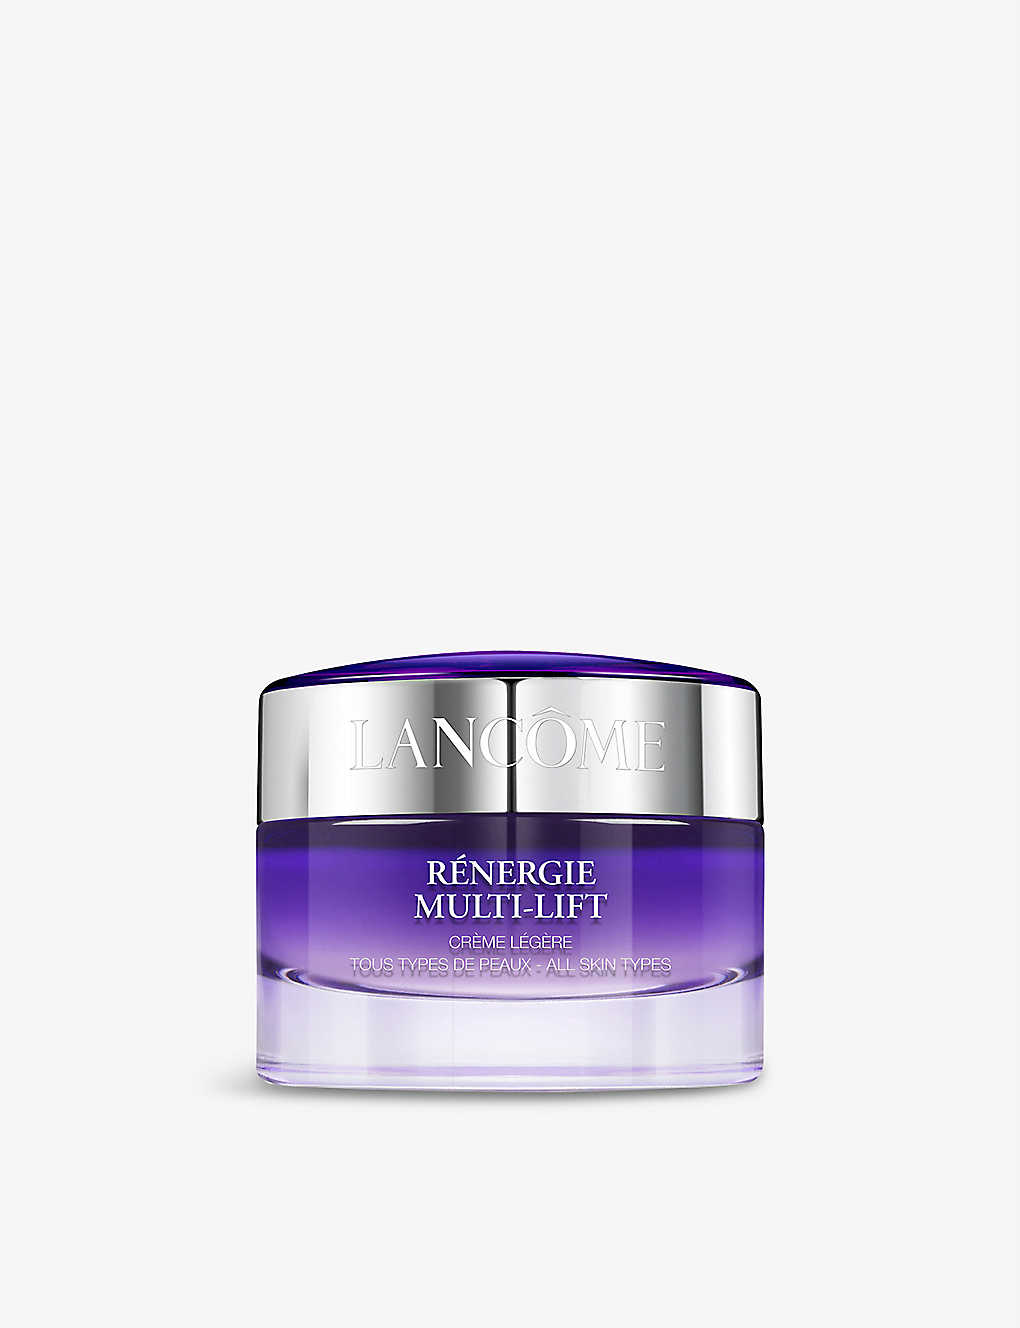 LANCOME: Renergie Multi-Lift cream 50ml